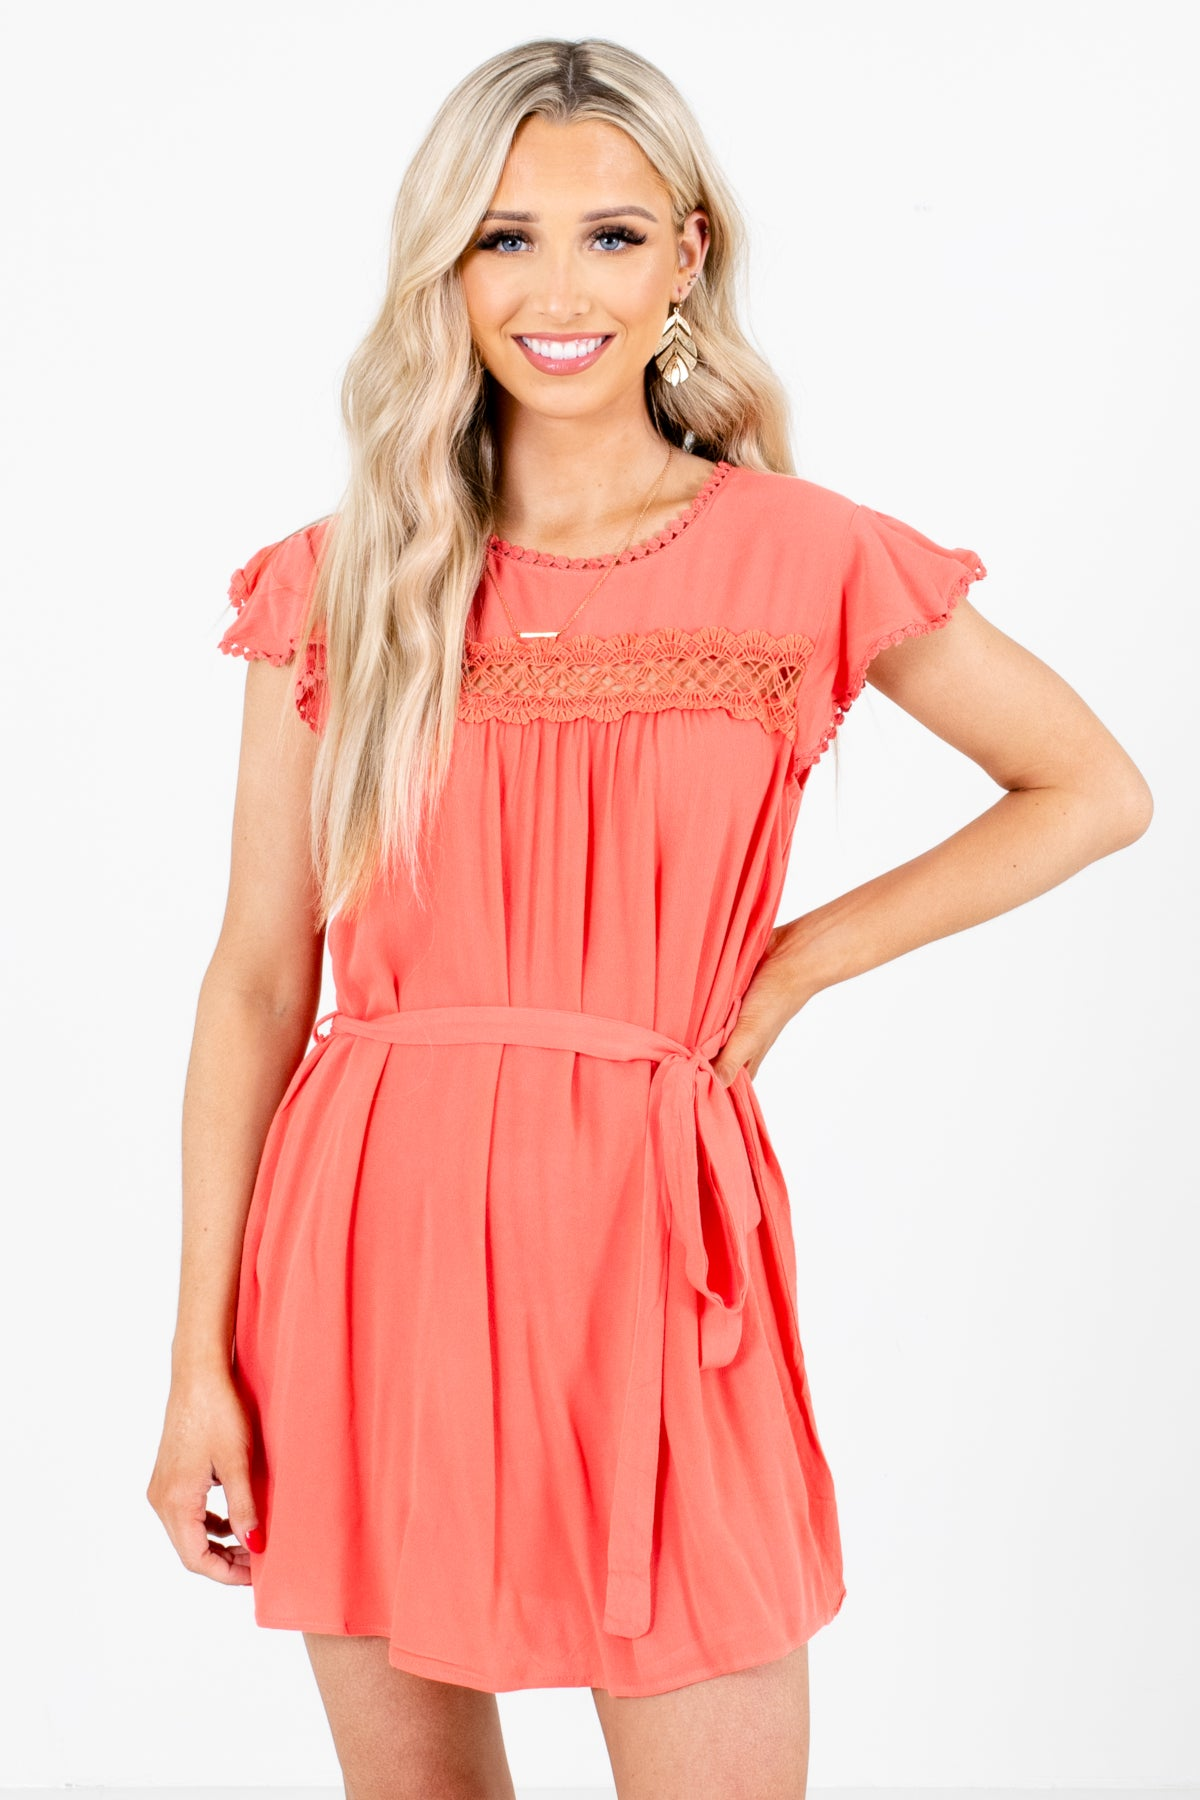 Coral Pink Crochet Lace Accented Boutique Mini Dresses for Women